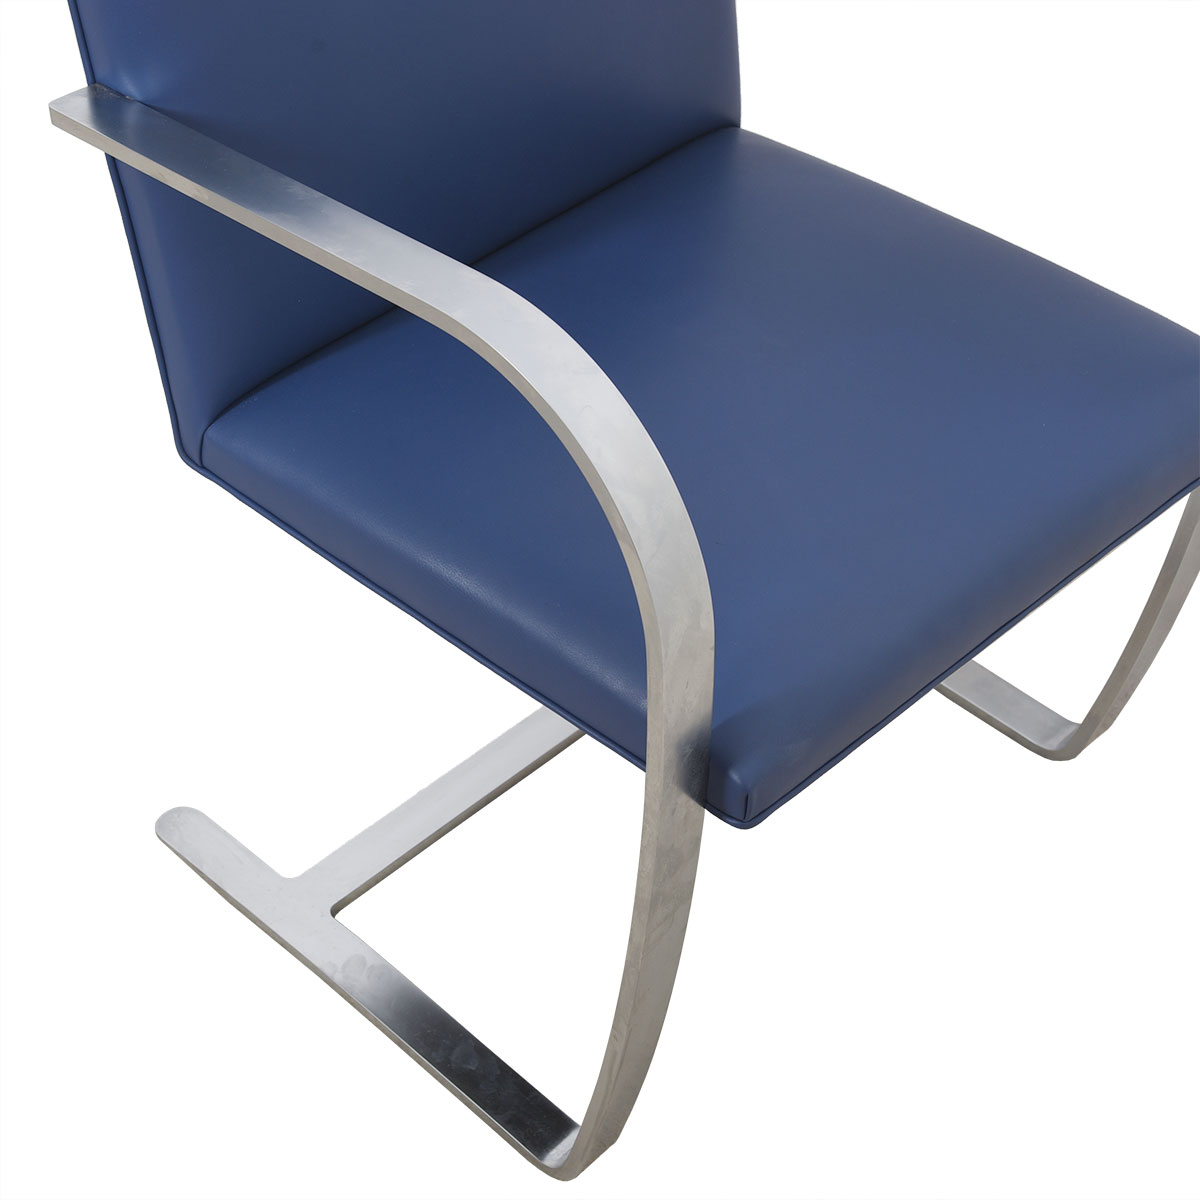 Pair of Stainless Steel Flat Bar Brno Chairs with Cadet Blue Leather Upholstery by Knoll